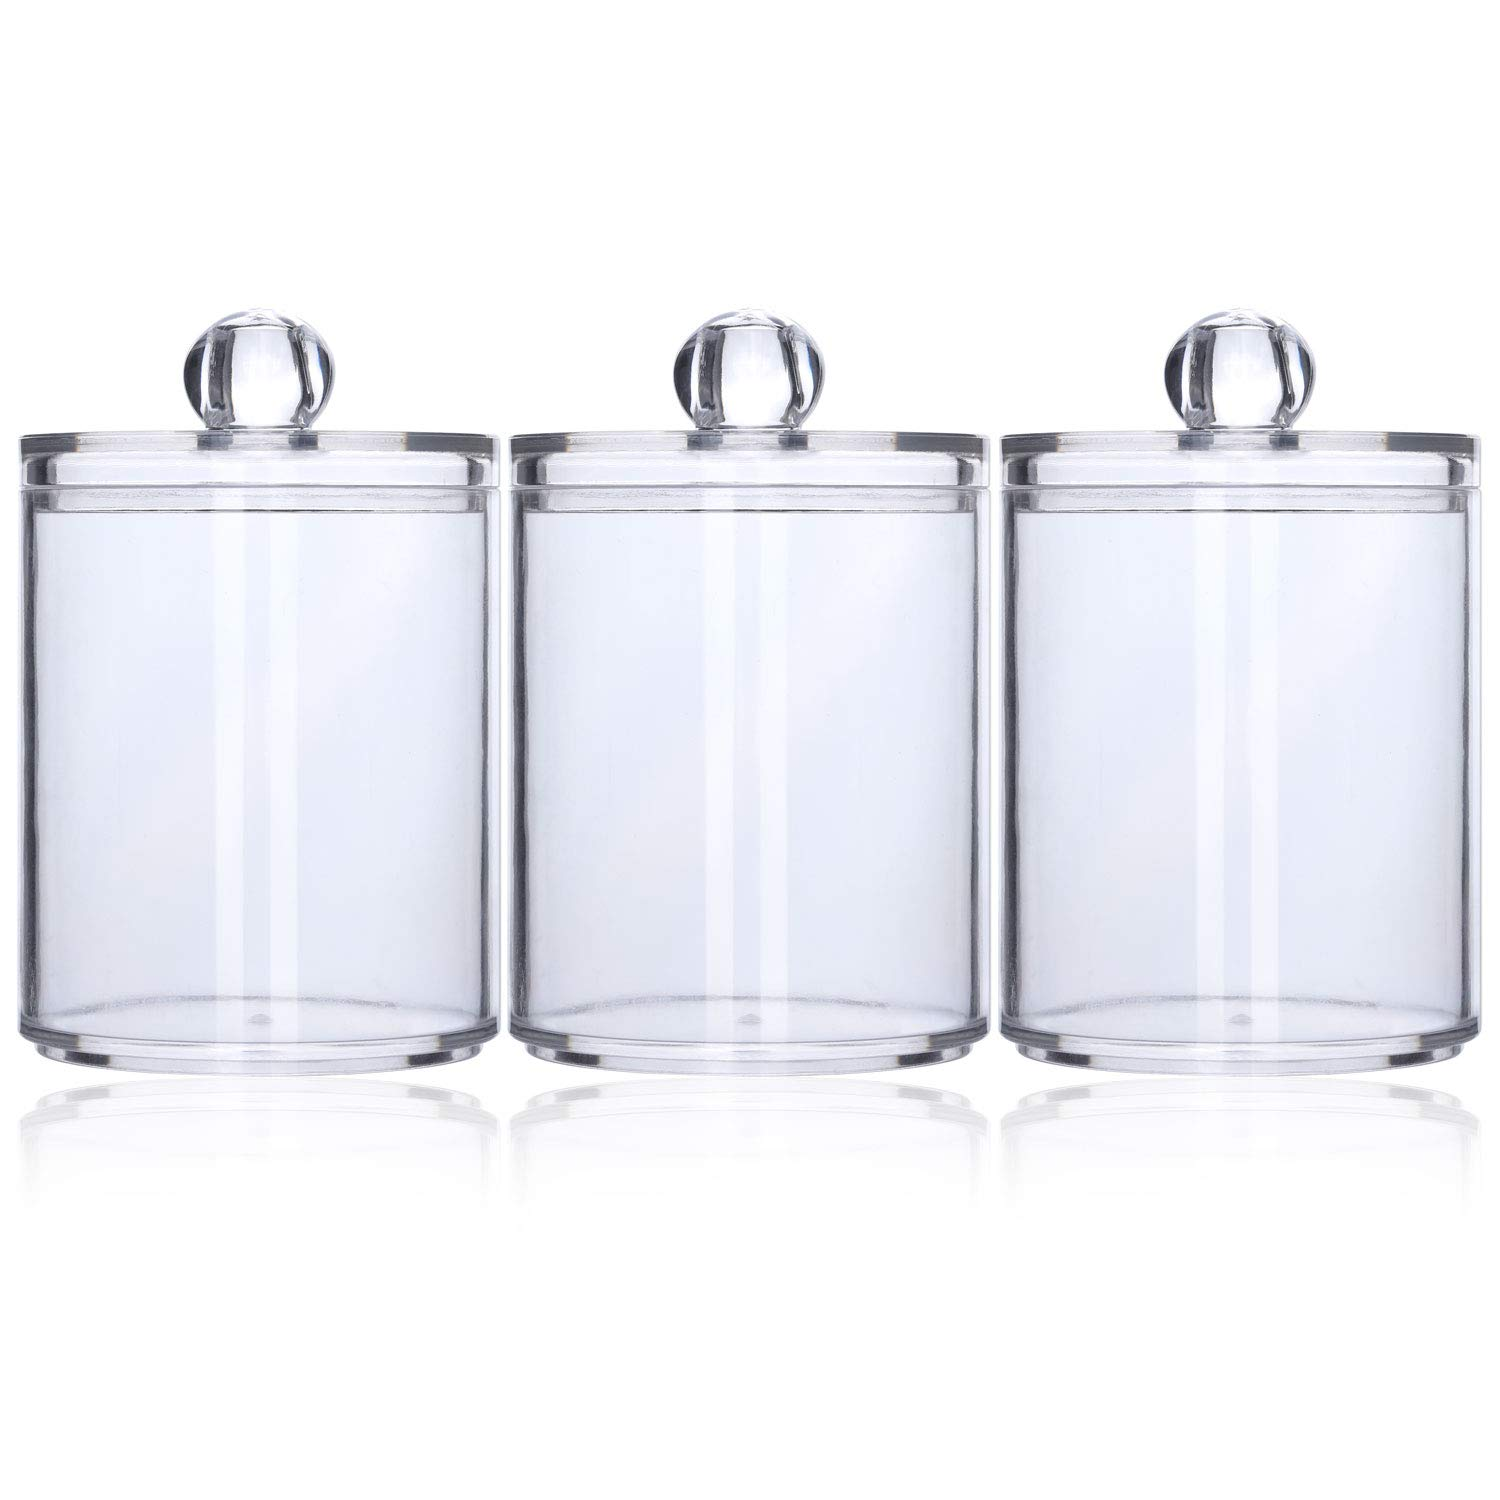 3 Plastic Cotton Swab Ball Pad Holder, Qtip Jar Clear Makeup Organizer, Bathroom Containers Individual Dispenser